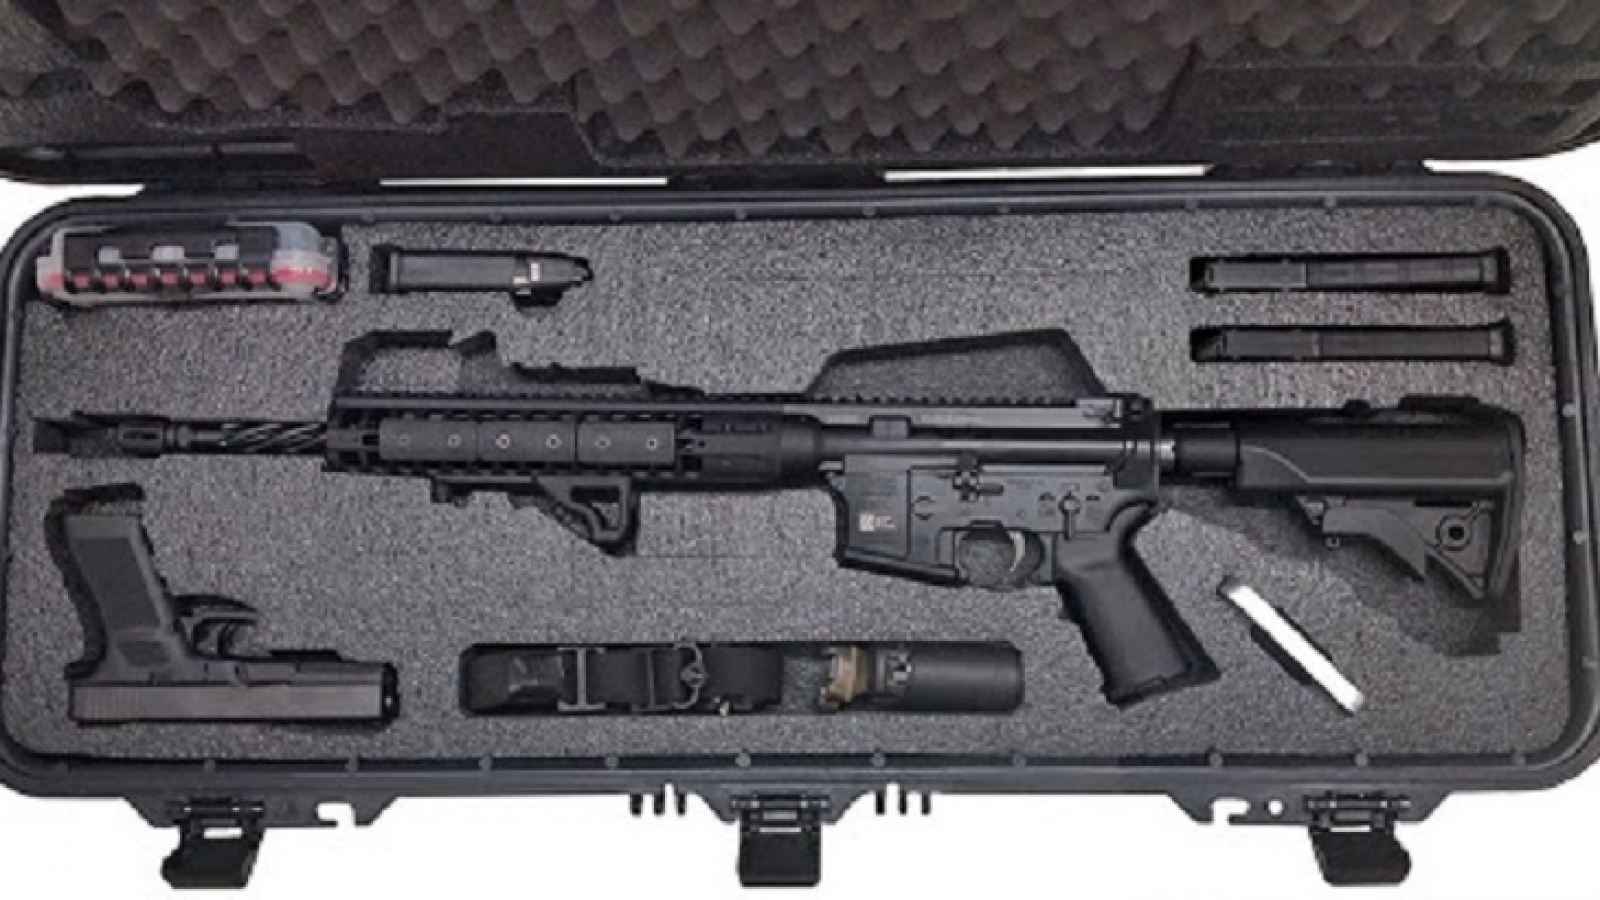 Tips for Choosing Weapon Accessories